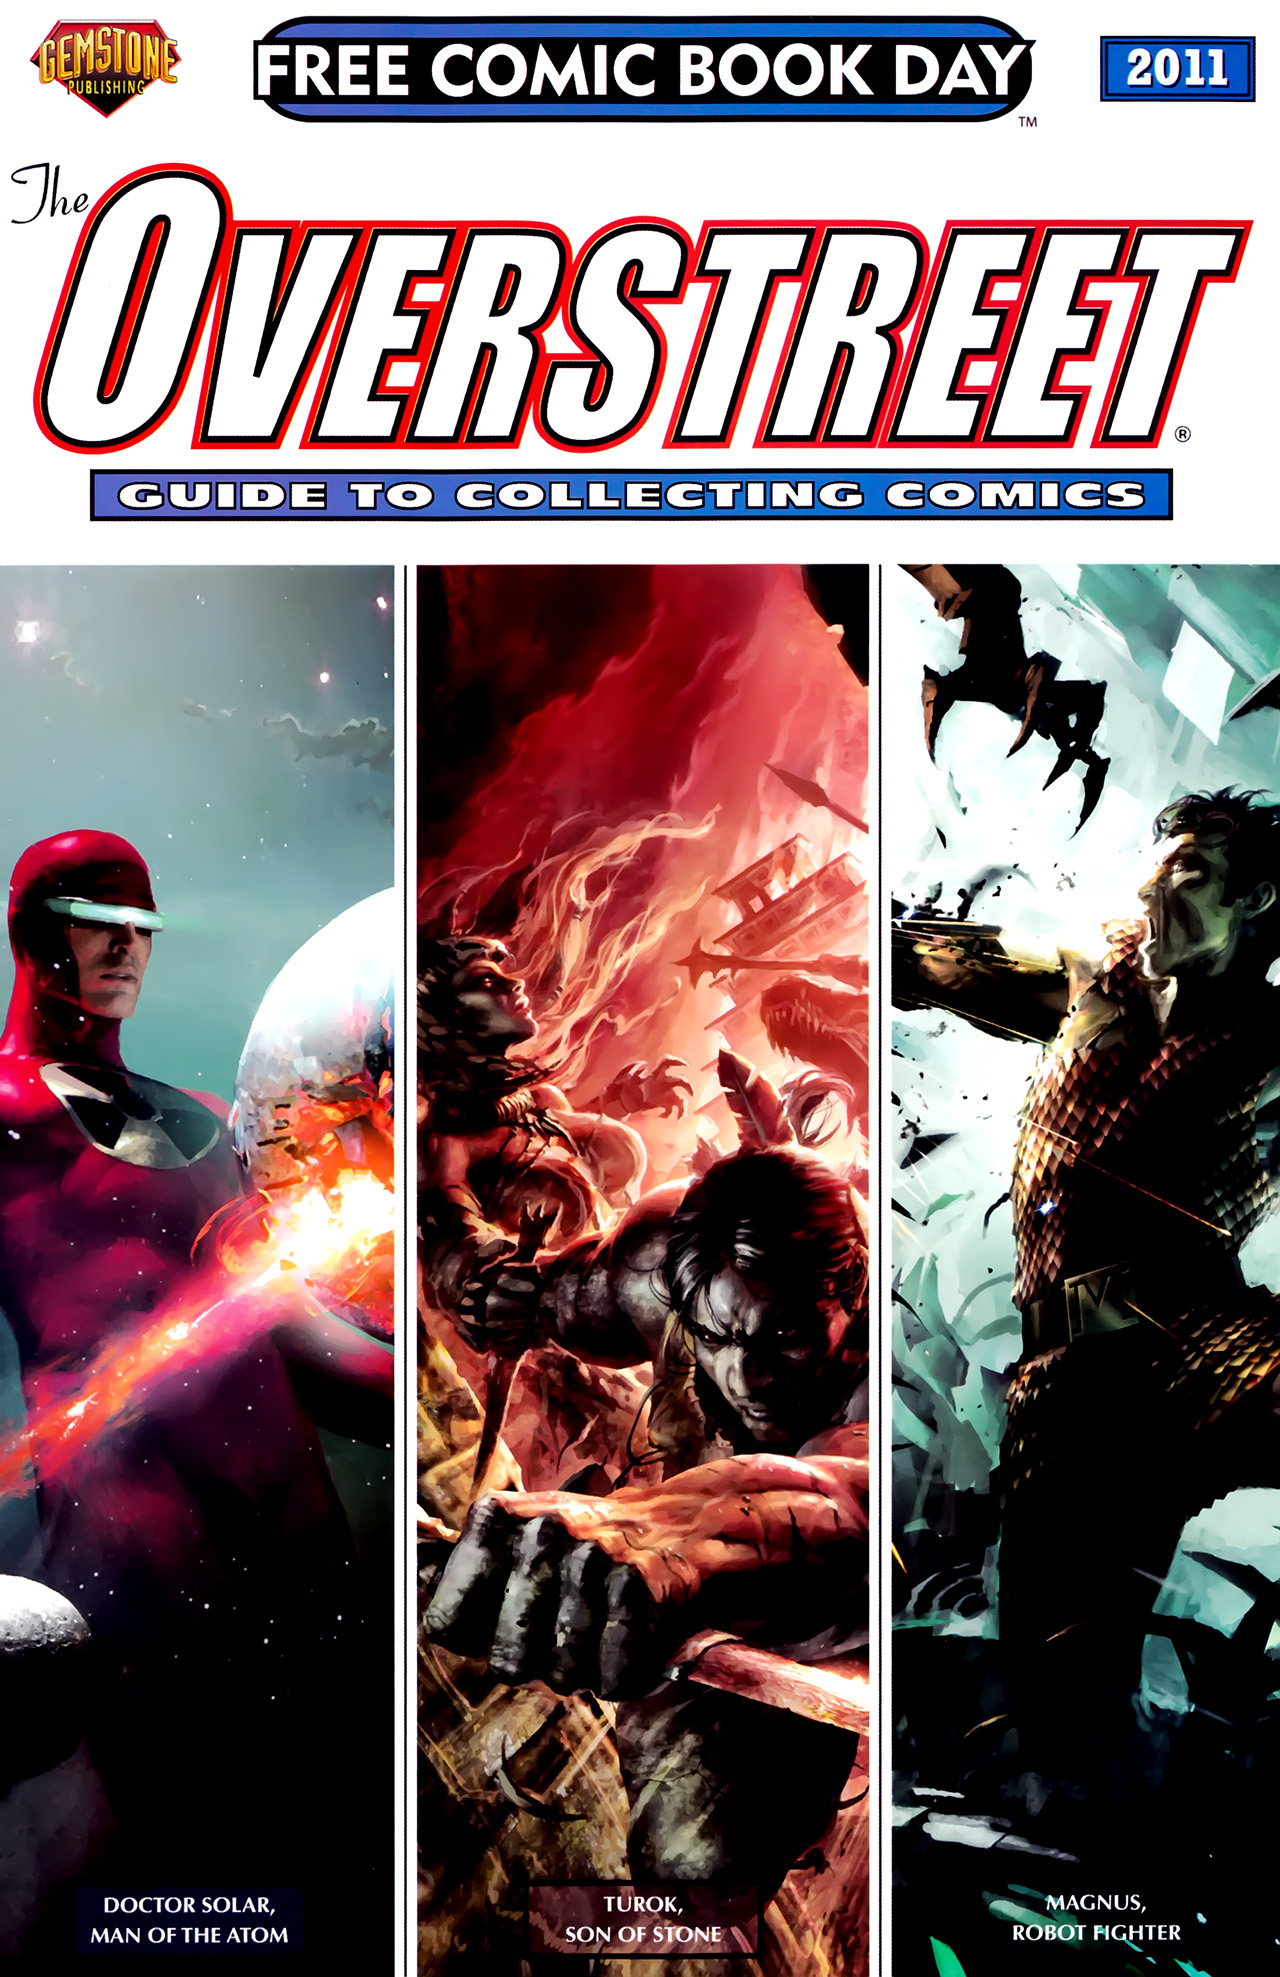 Overstreet Guide To Collecting Comics FCBD 2011 Overstreet Guide To Collecting Comics FCBD 2011.jpg